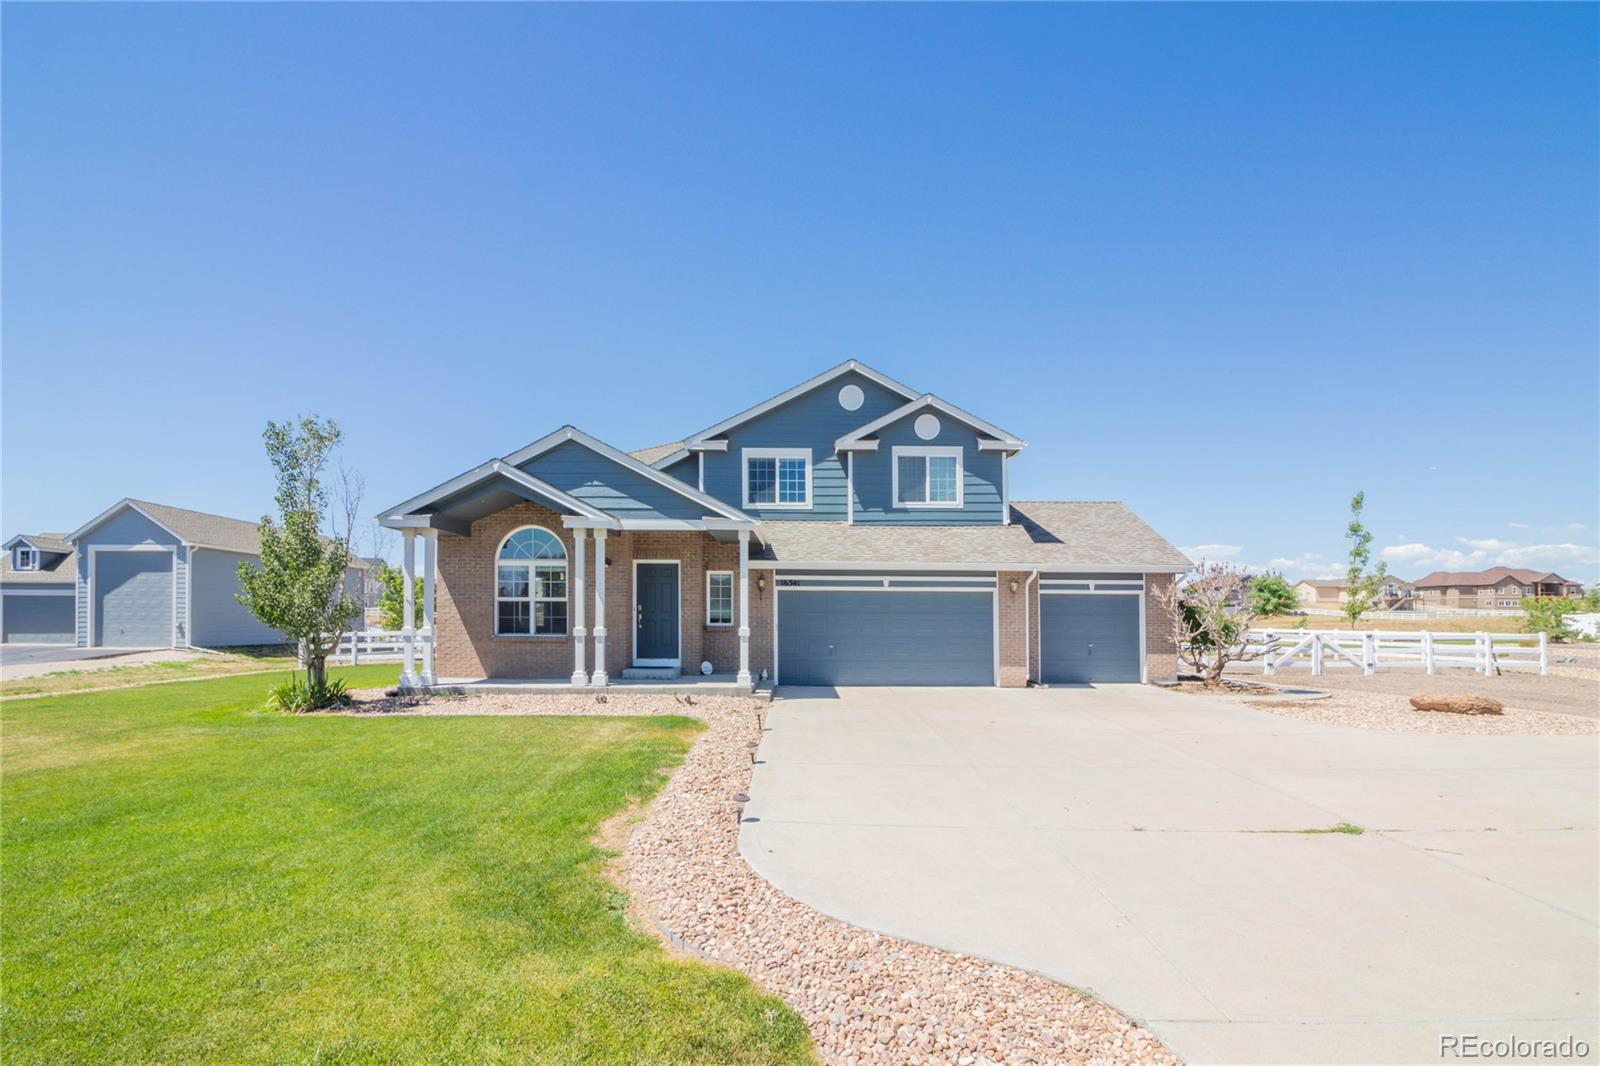 MLS# 4446332 - 29 - 16341 Timber Cove Street, Hudson, CO 80642